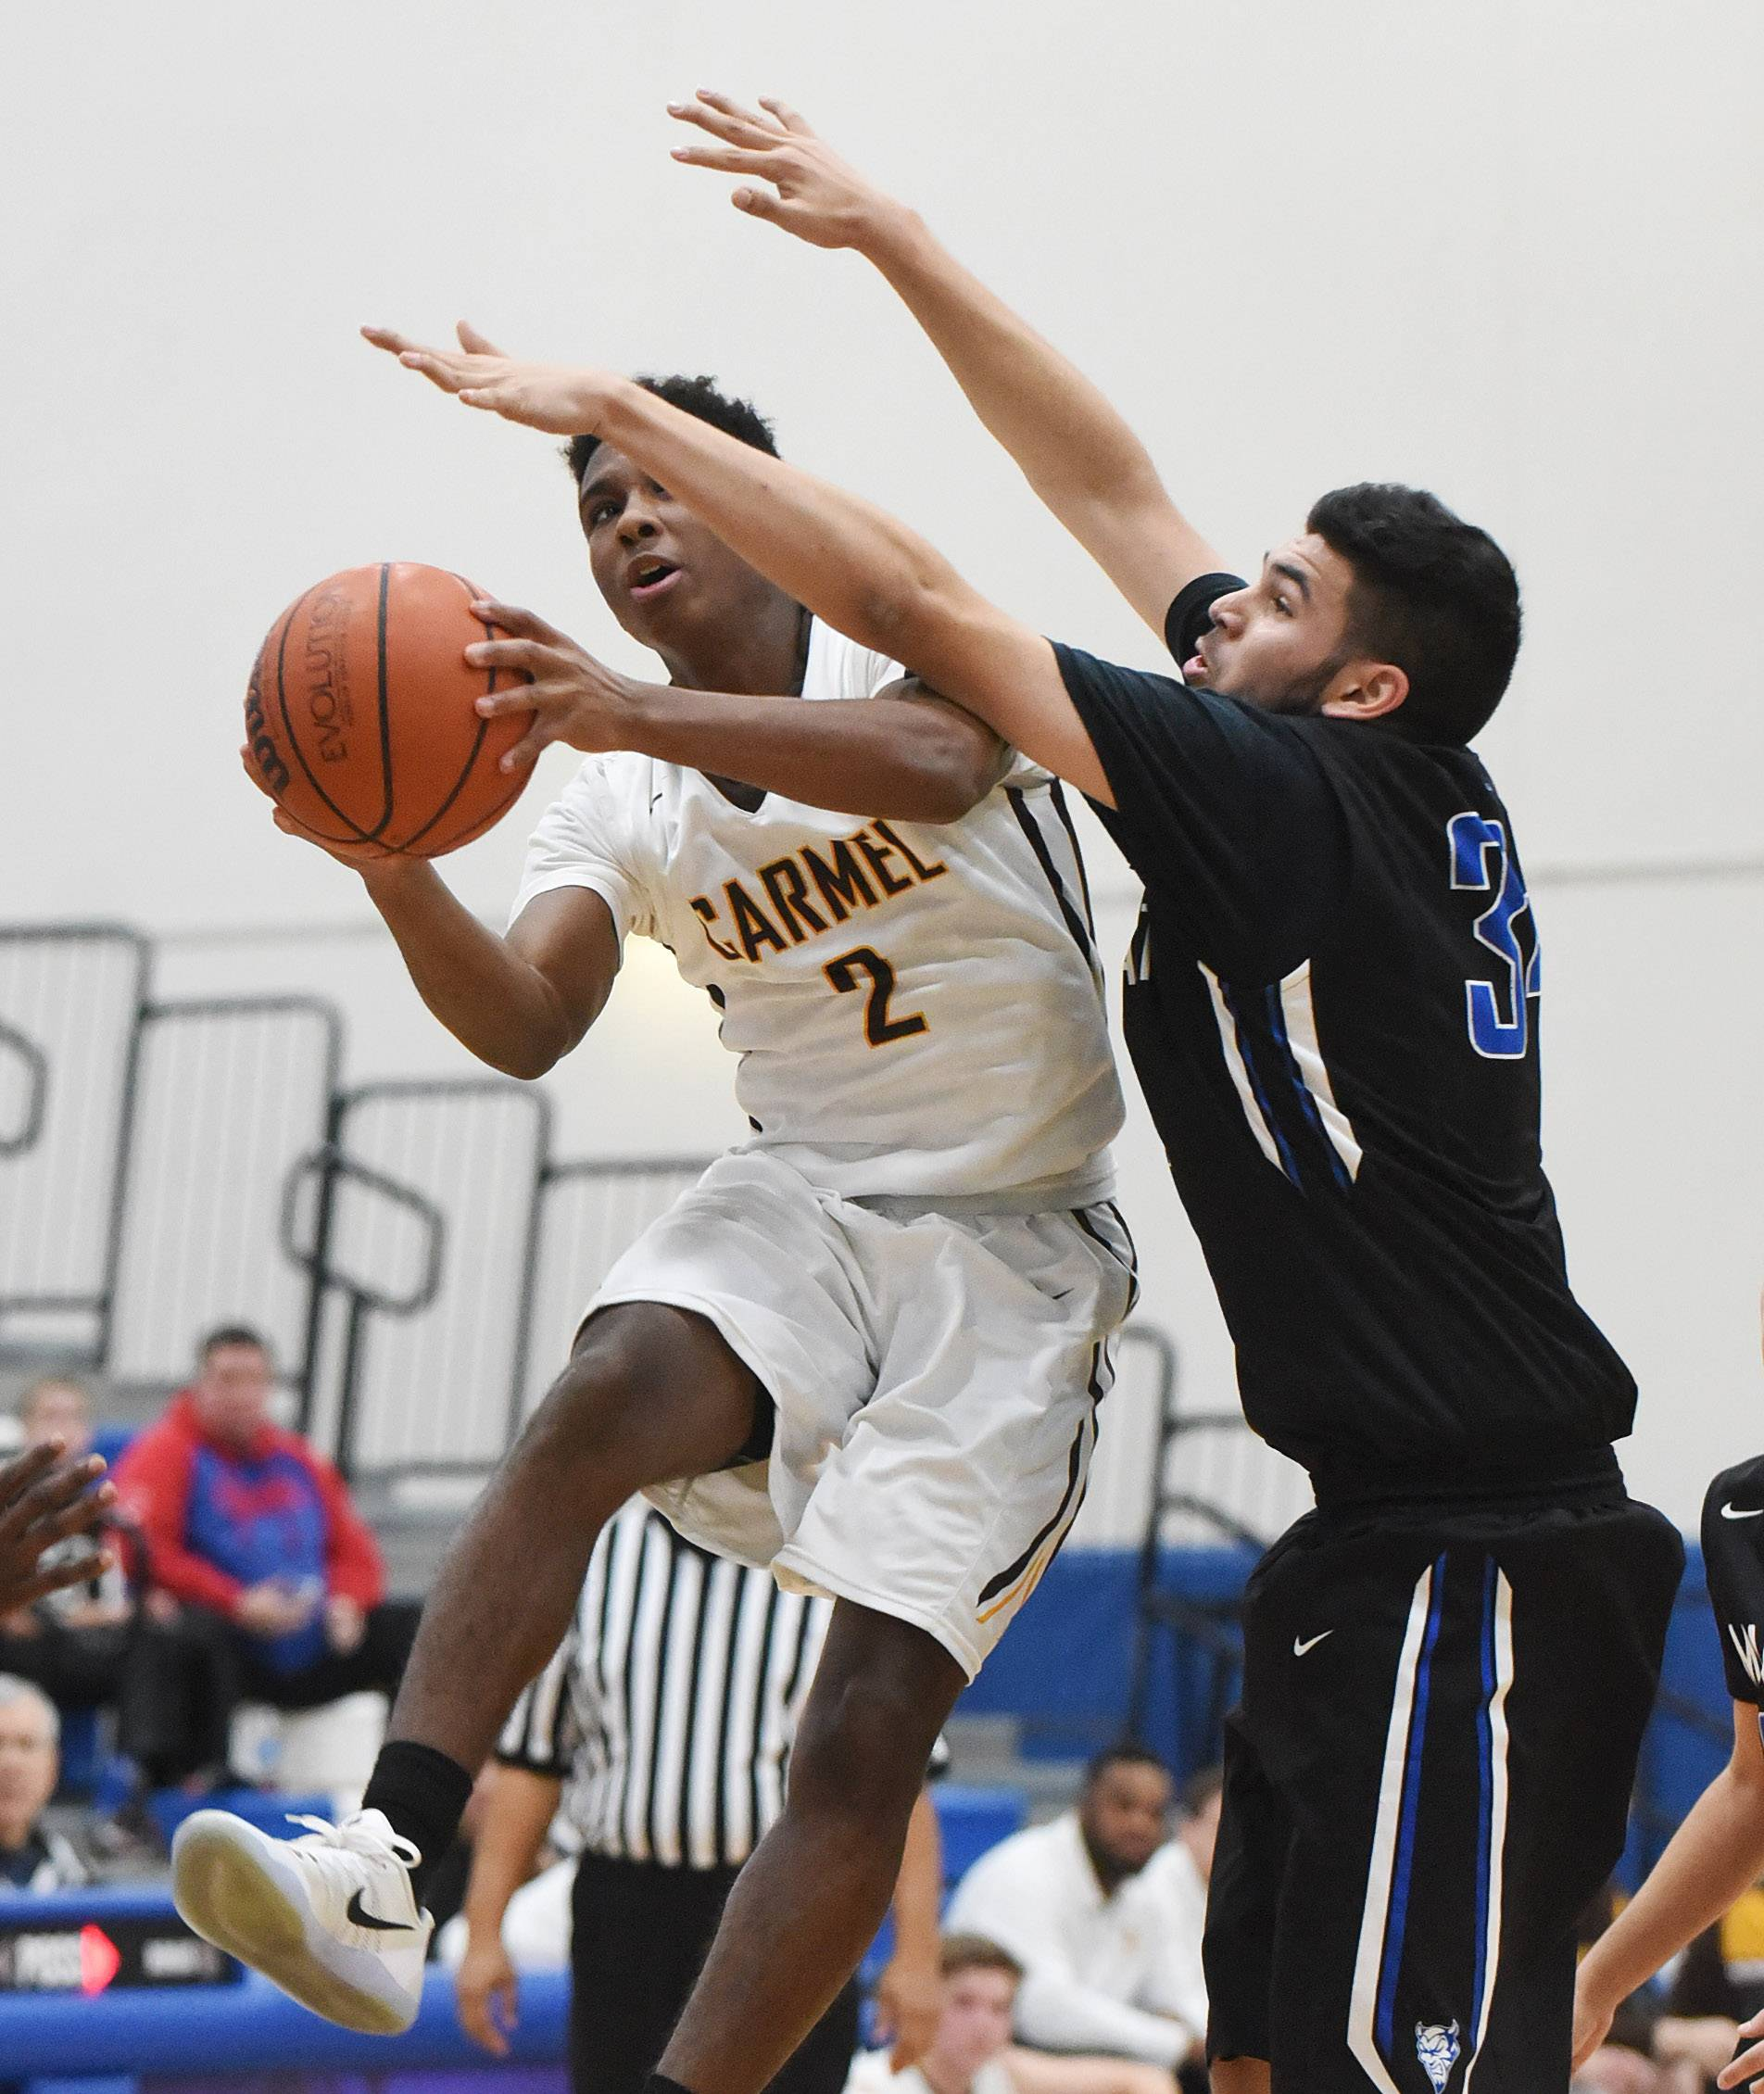 Carmel's Brian Julien (2) heads to the hoop past Maine East's Kyle Gilani during MLK tournament play Monday at Lake Zurich.